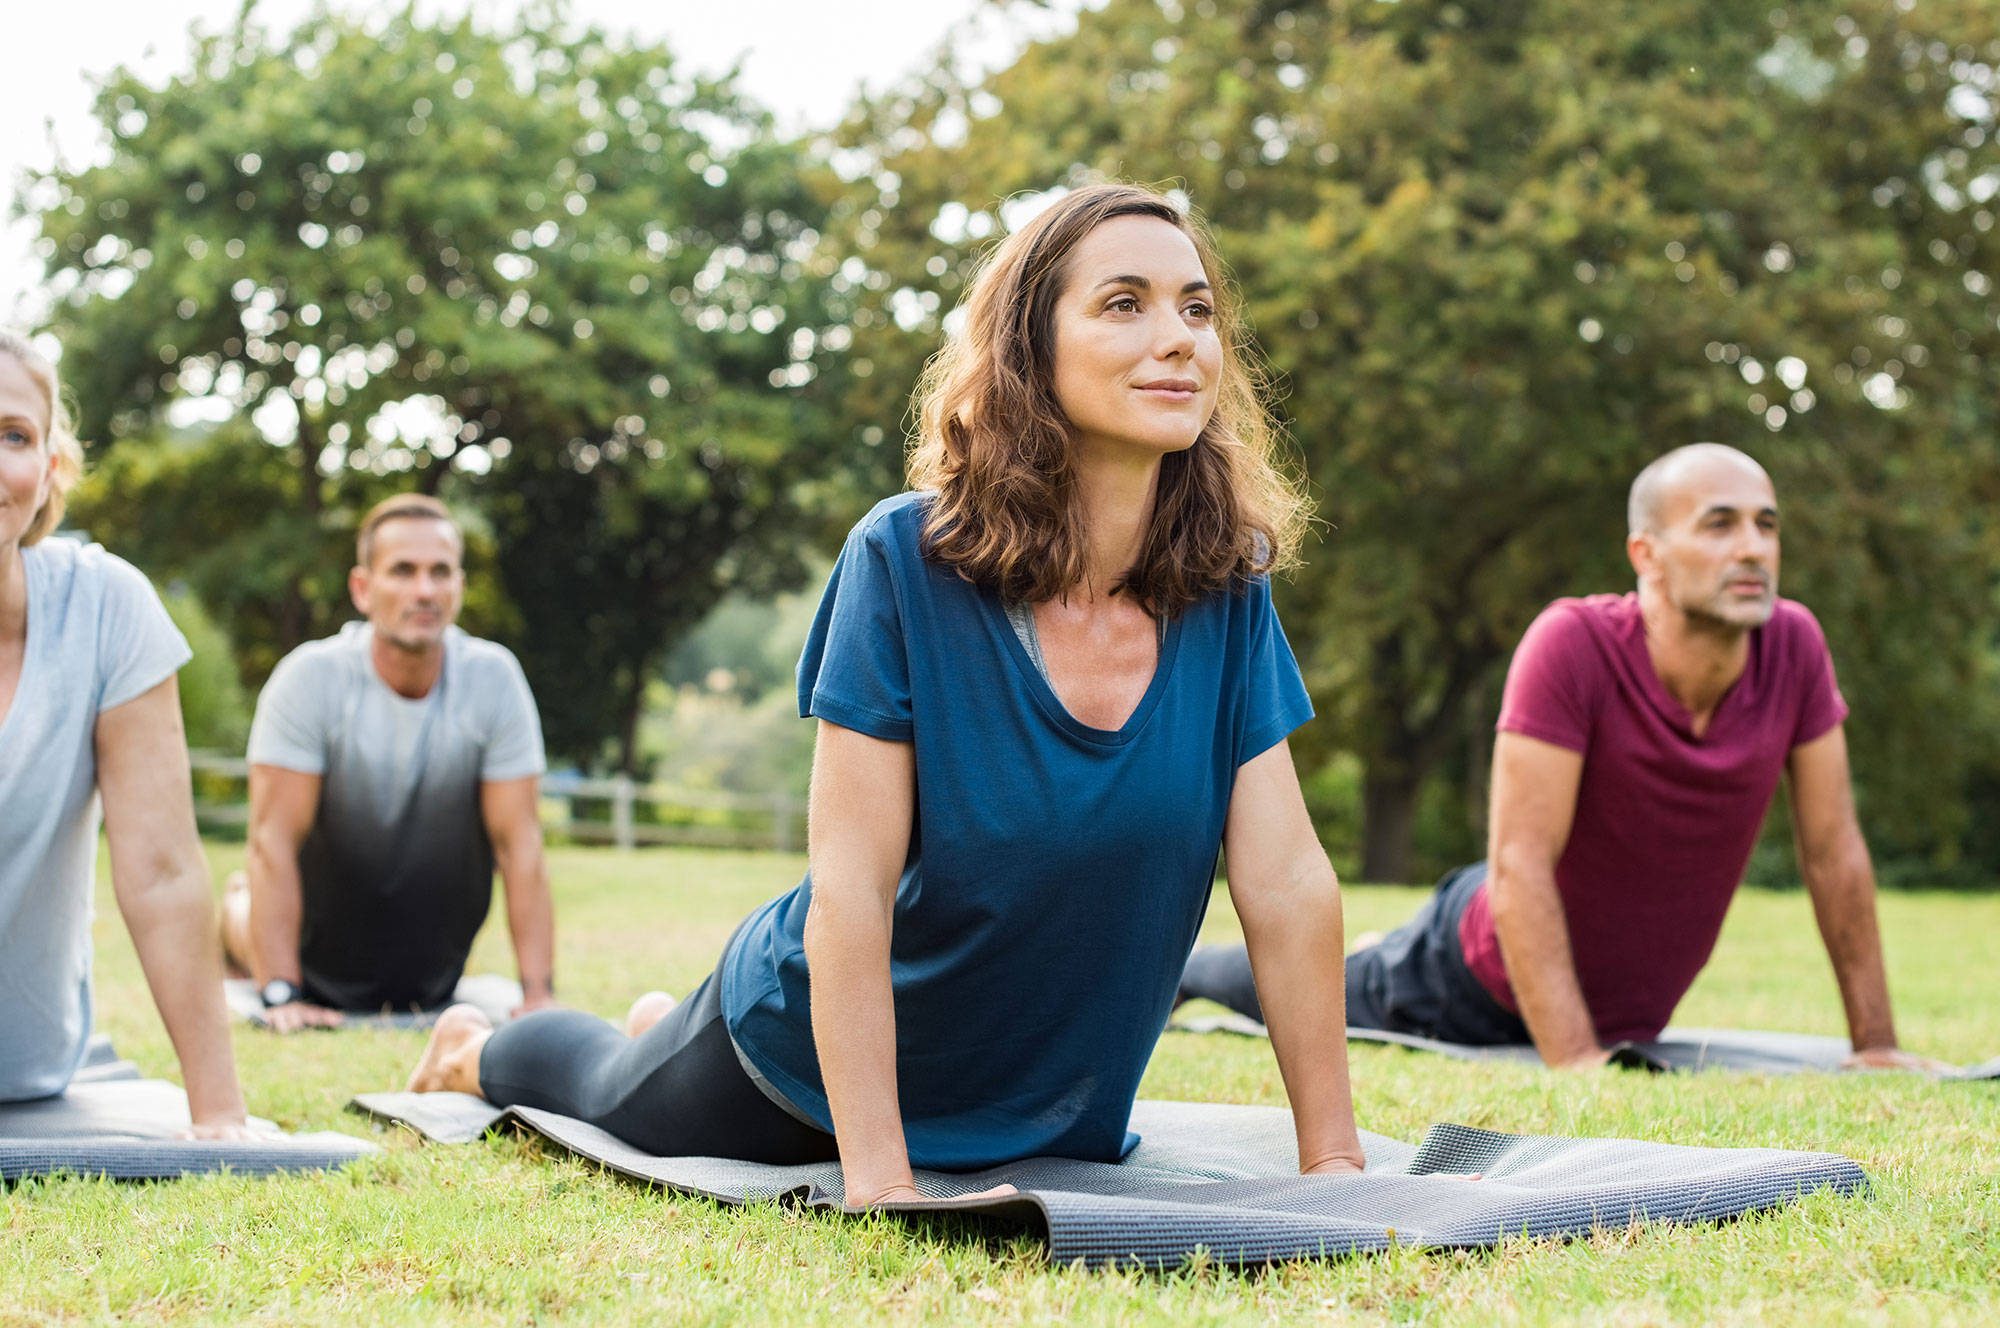 Outdoor Power Yoga class in Boulder's Chautauqua Park. Ditch the yoga studio and discover the FitLiv experience.